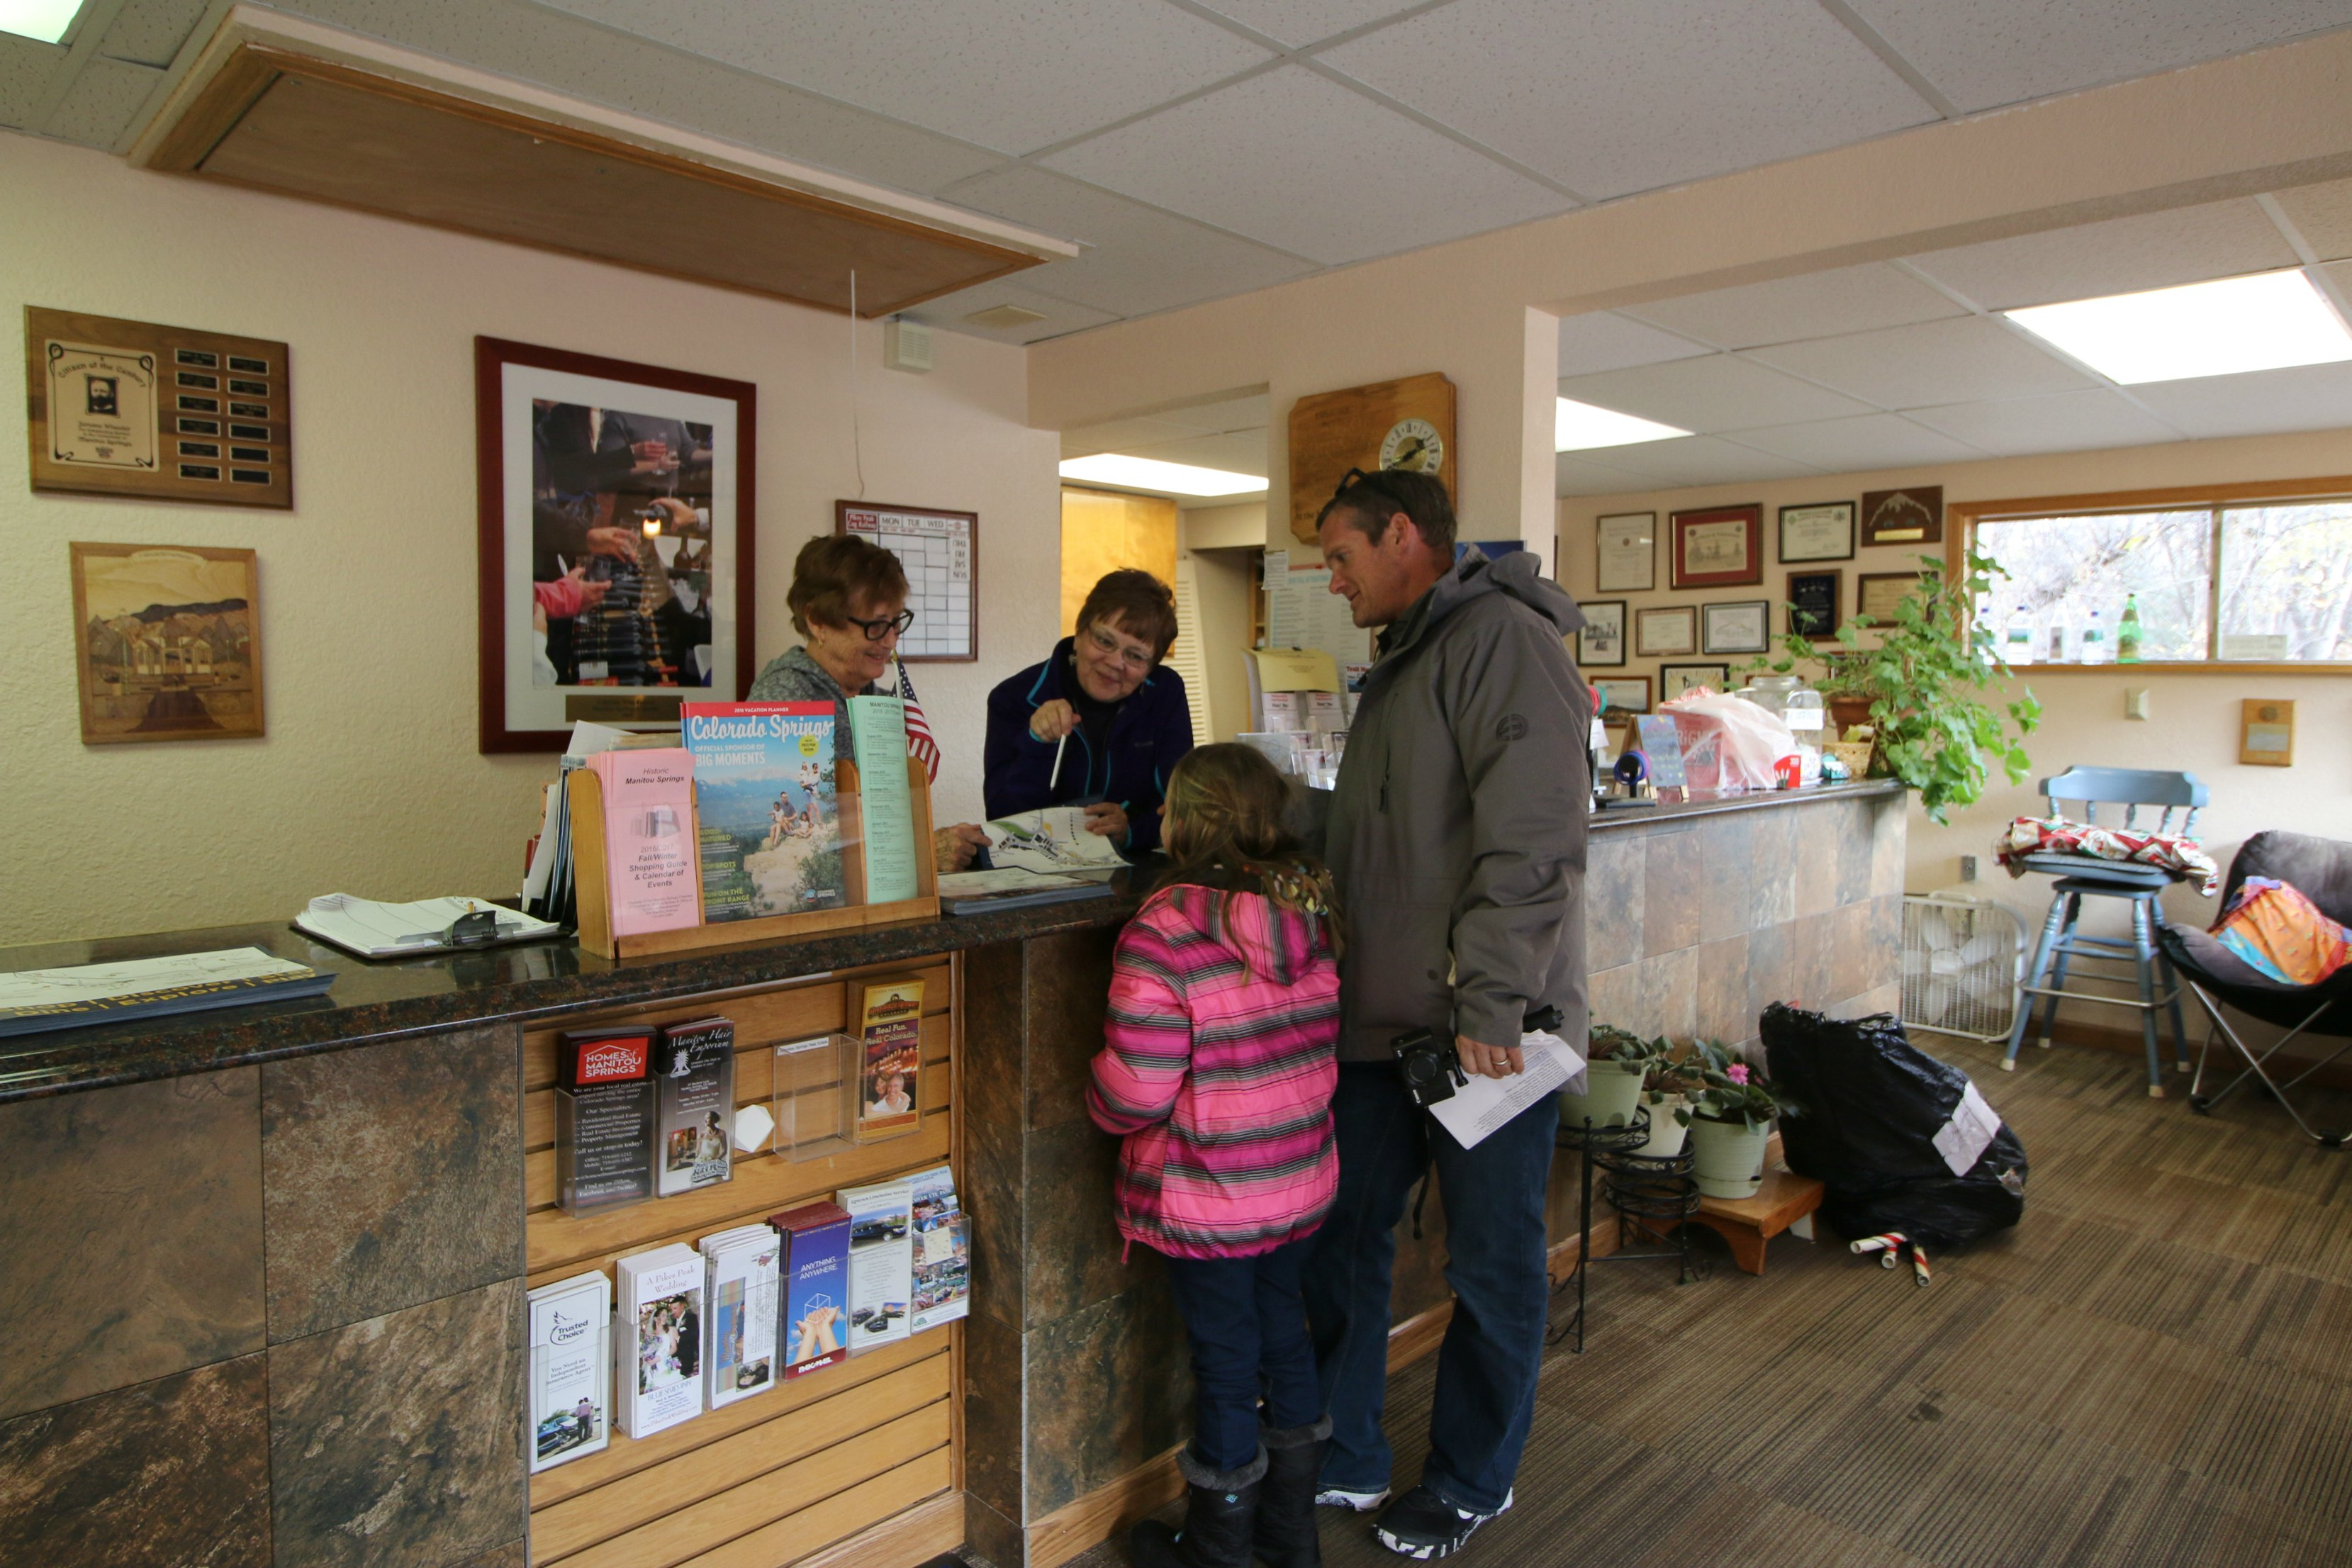 manitou-springs-visitors-center